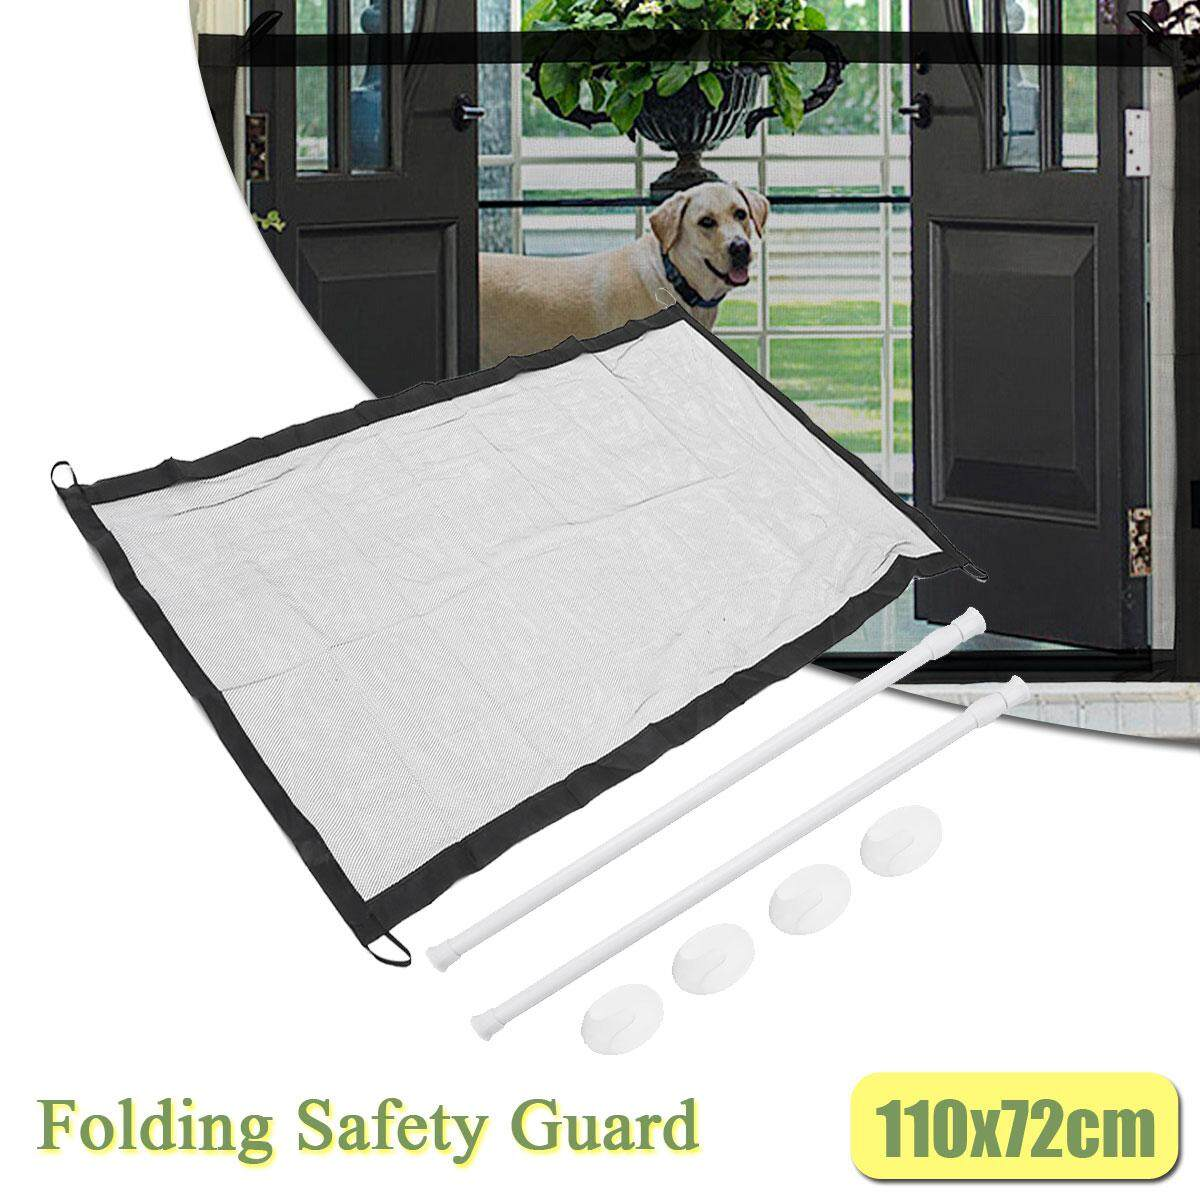 Baby Gate Fence Folding Safety Guard Mesh Net Child Pets Dog Cat Gauze Barrier By Audew.